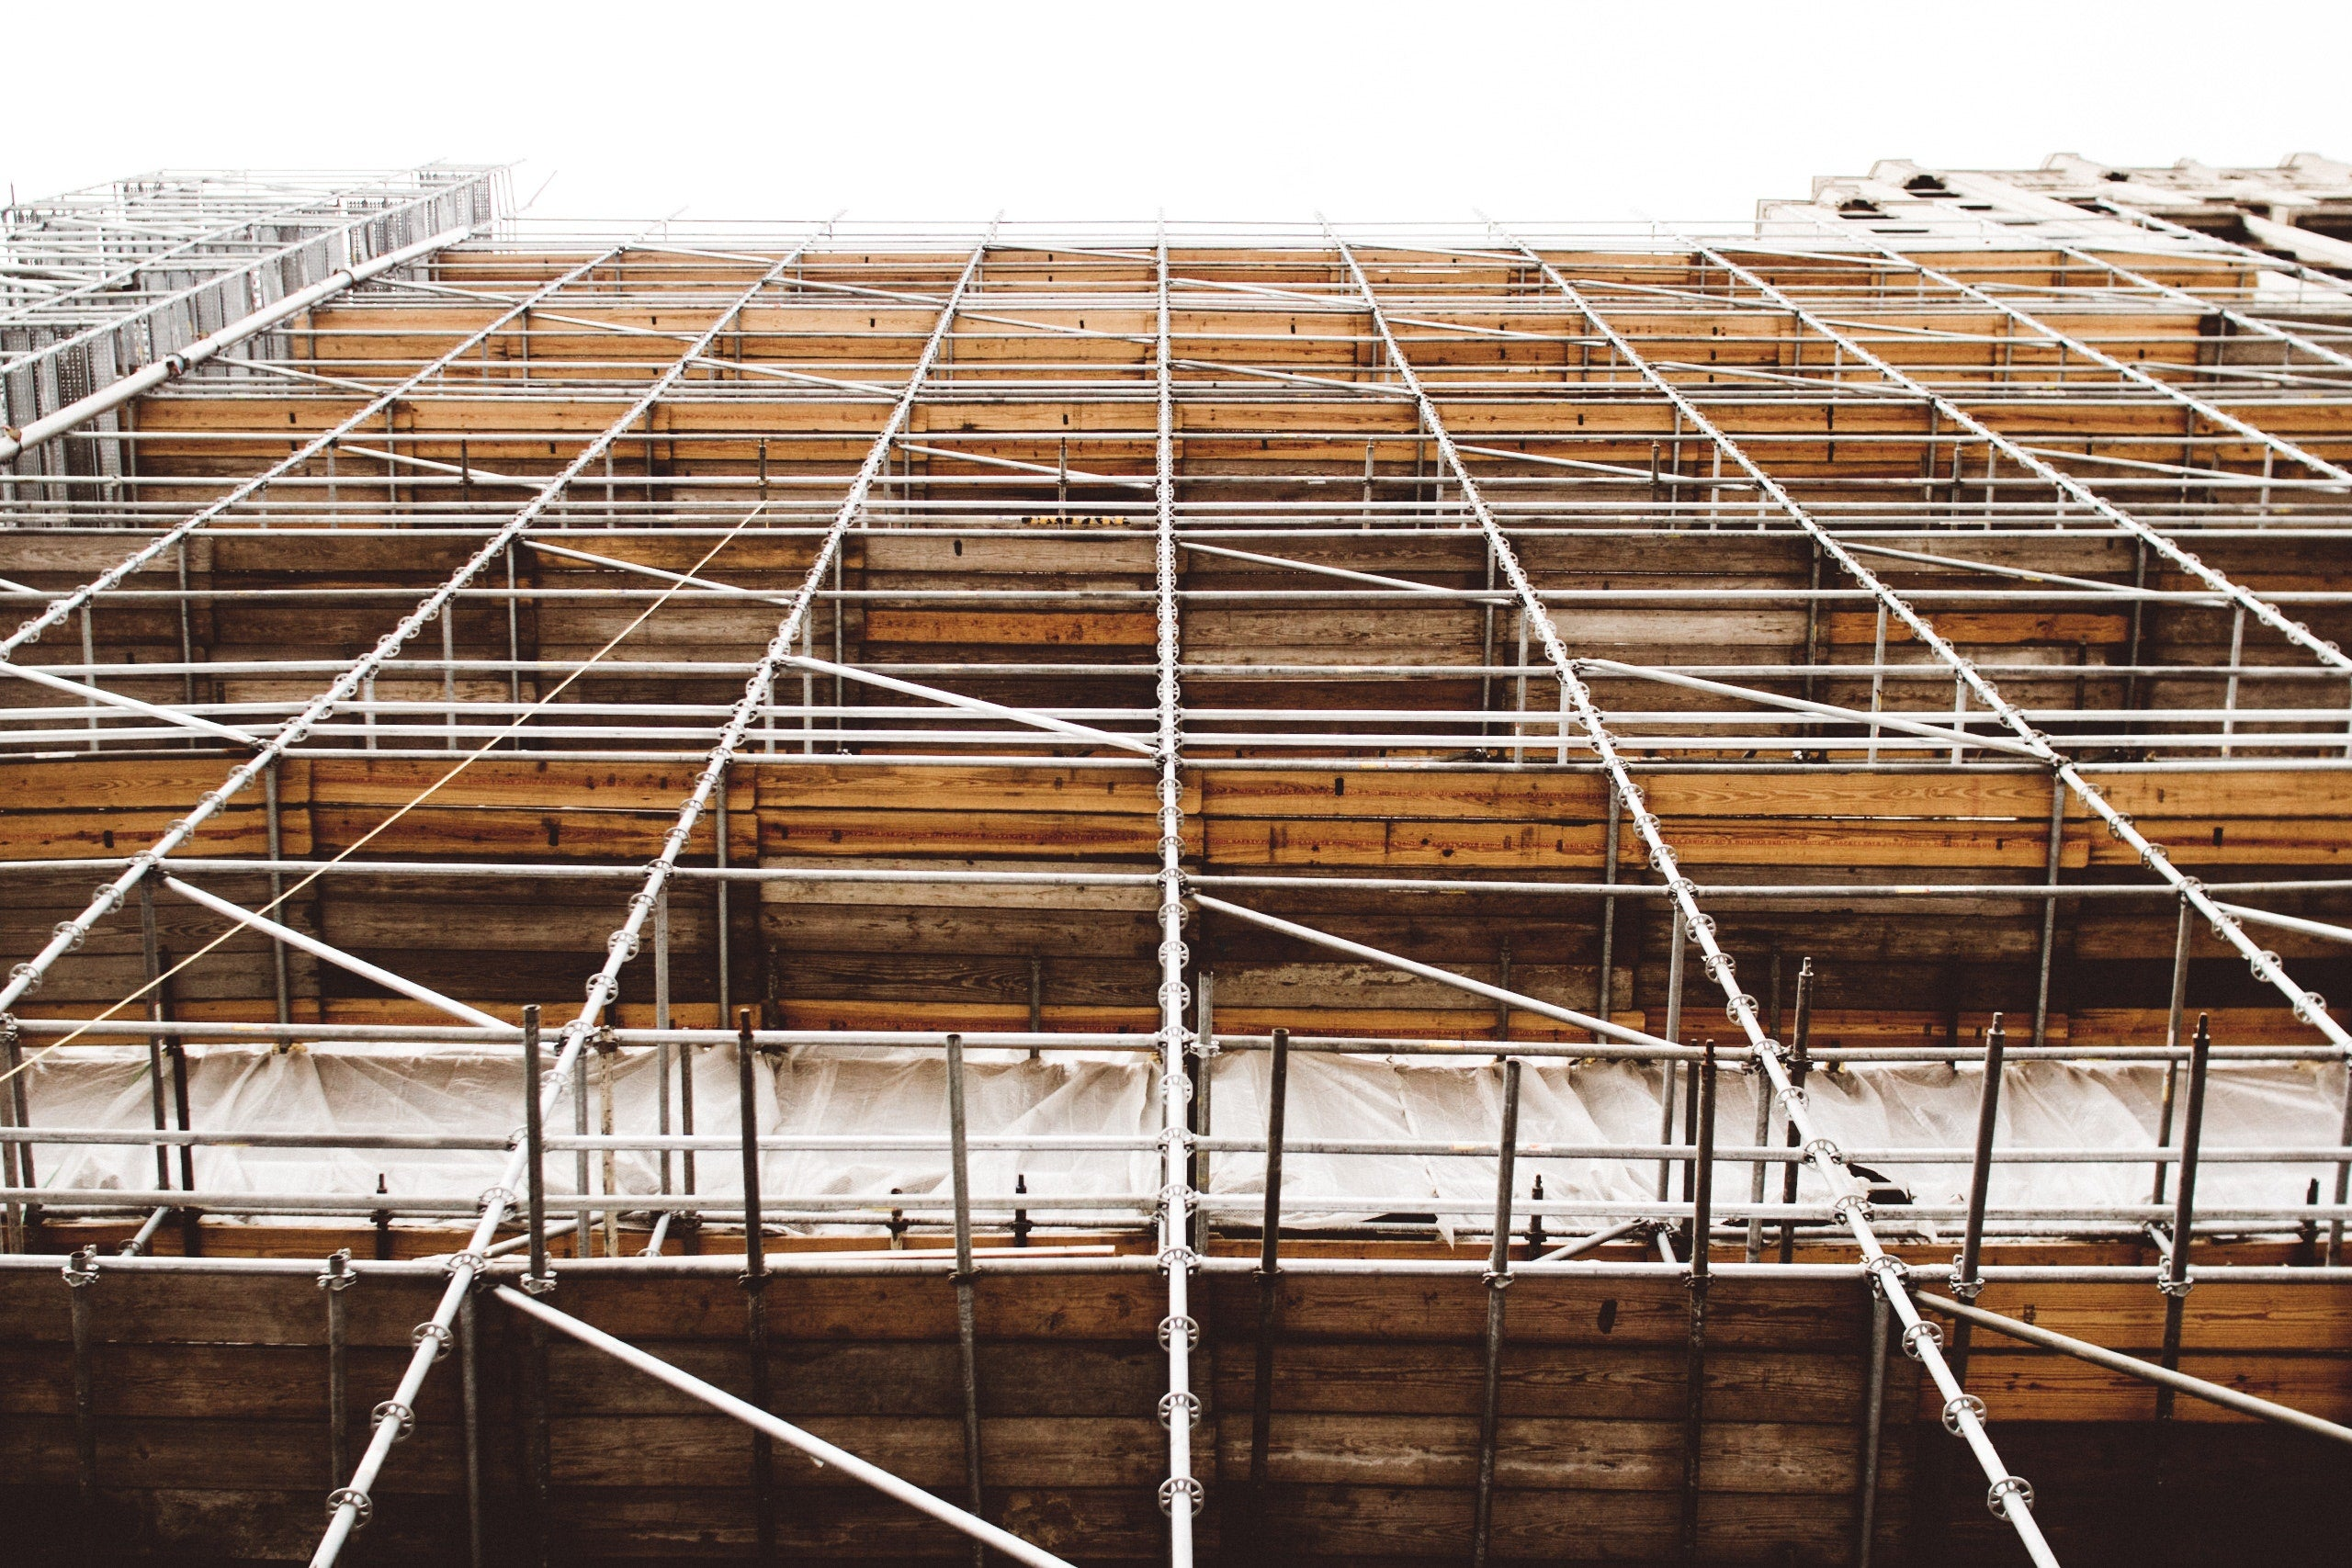 Employer's defence of genuine redundancy for terminated scaffolder falls apart